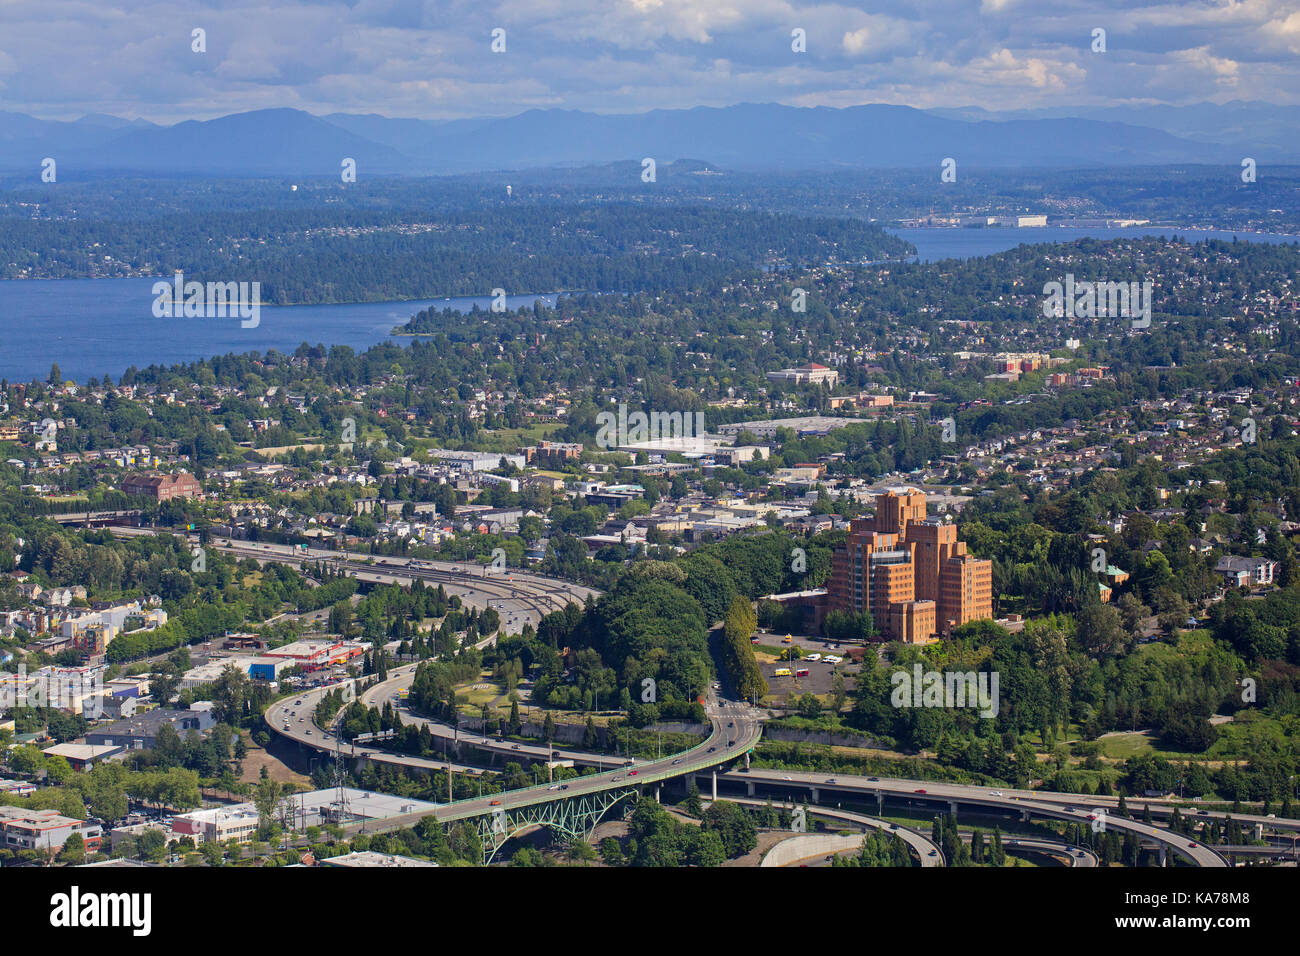 View of Interstate 5 Highway from the Columbia Centre, Seattle, Washington State - Stock Image